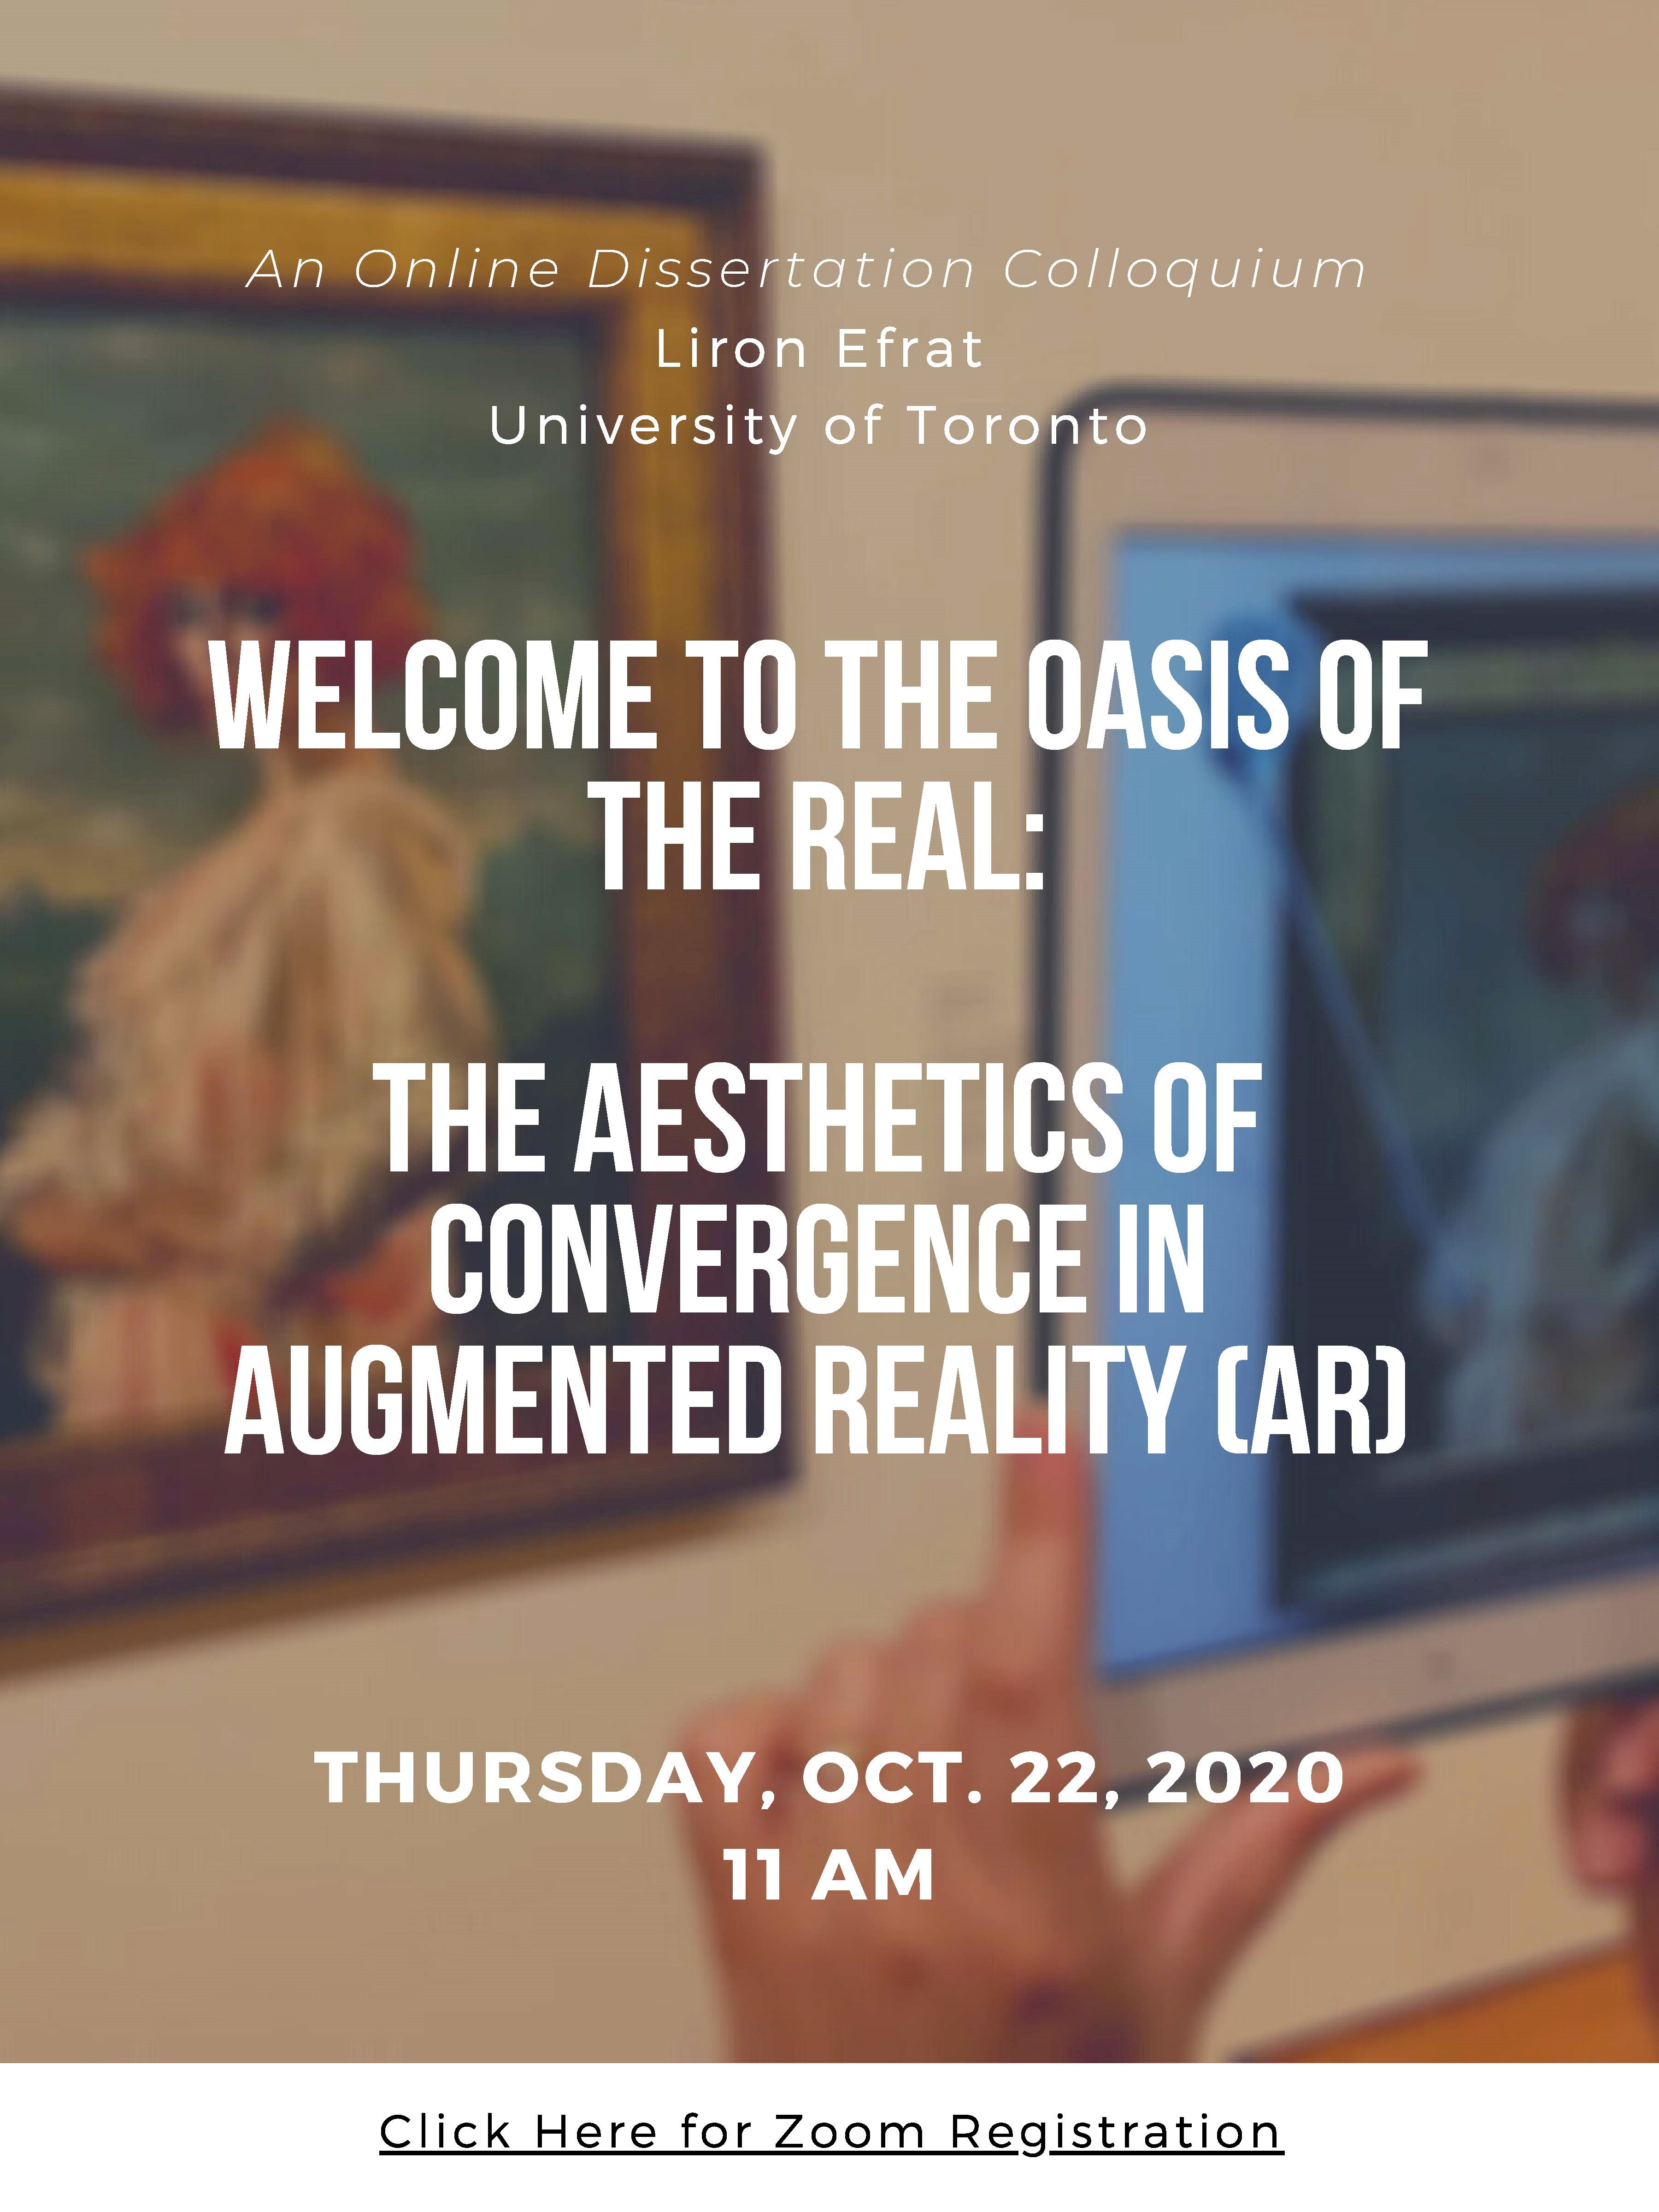 Welcome to the Oasis of the Real colloquium